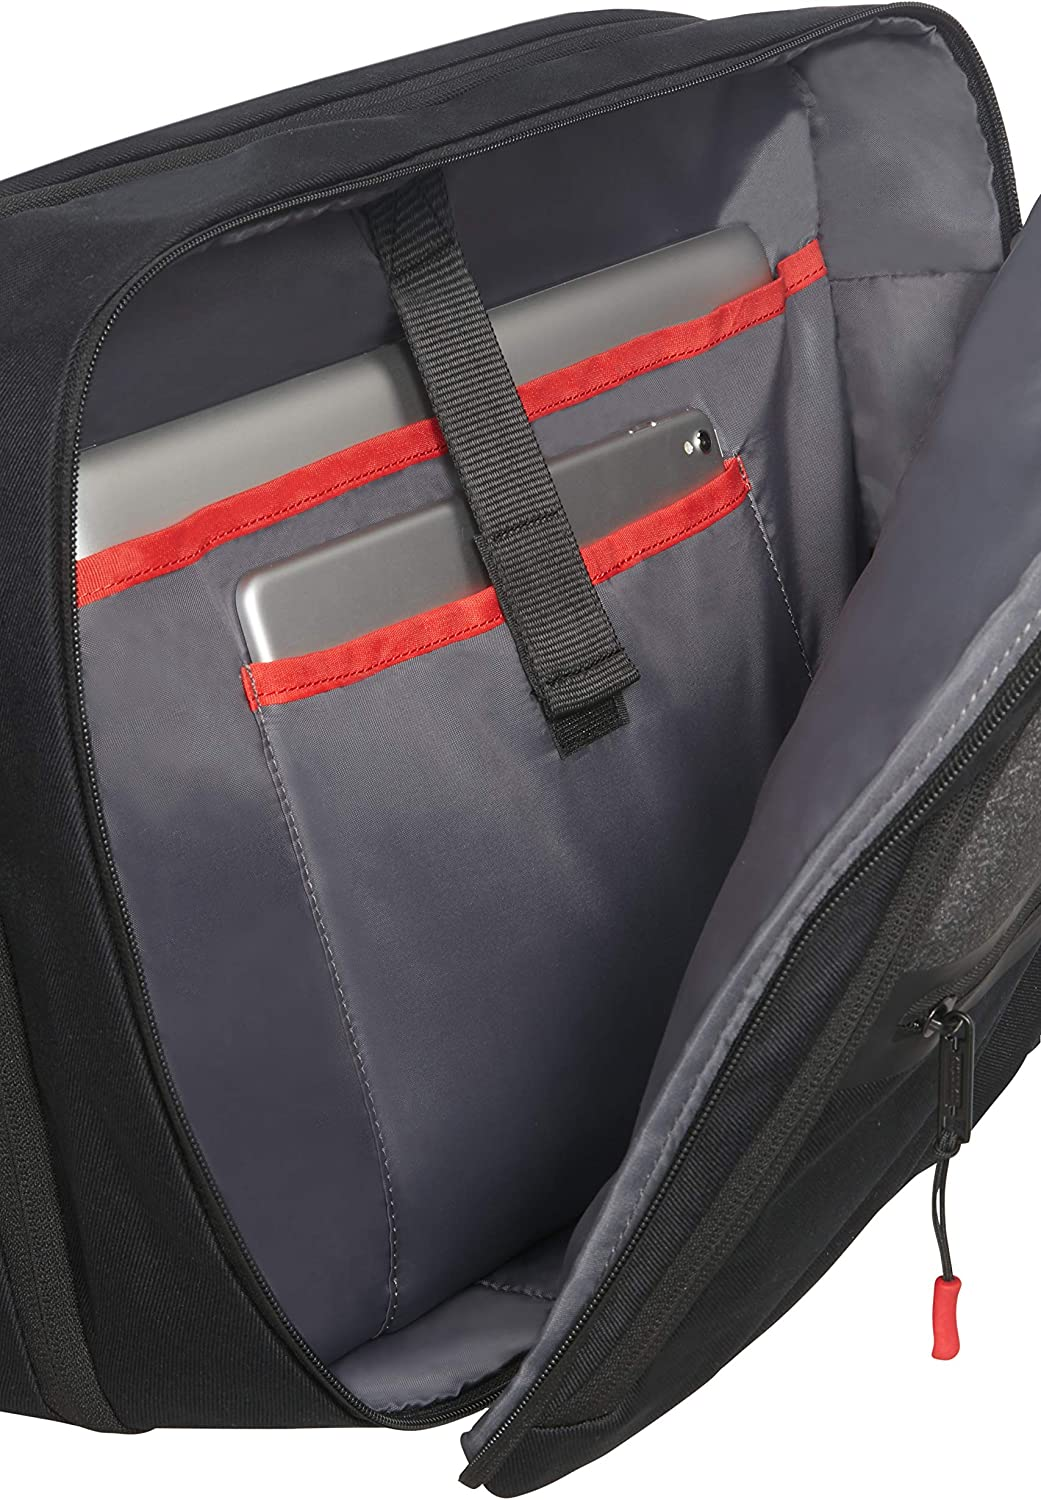 American Tourister City Aim Bagage Cabine 44 Centimeters 32.5 Gris Anthracite Grey